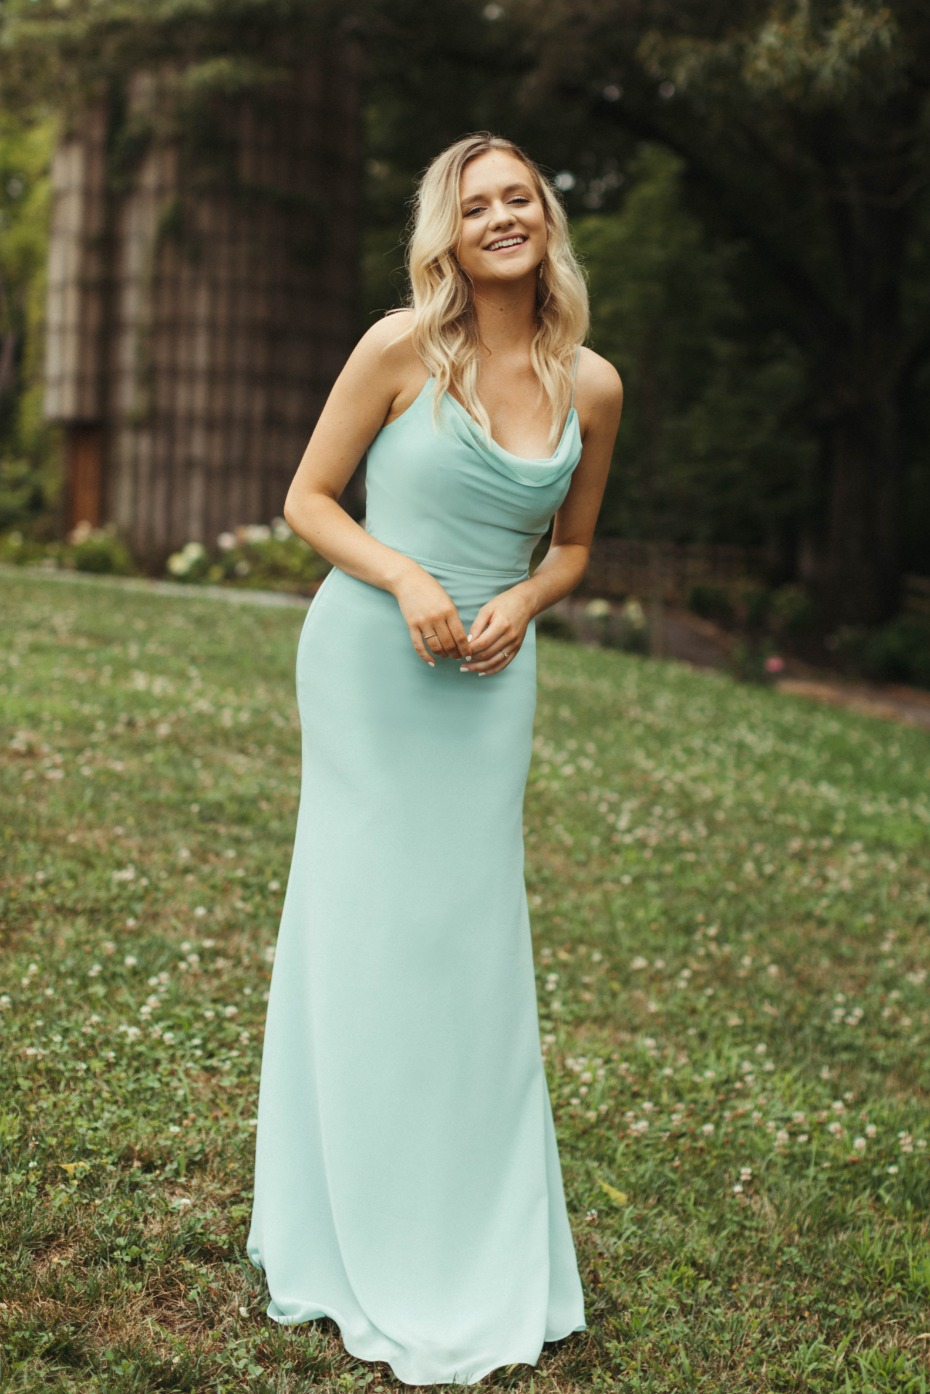 Bridesmaid Dresses They'll Love for Way More Than Just Their Fierce Fit and Fashion